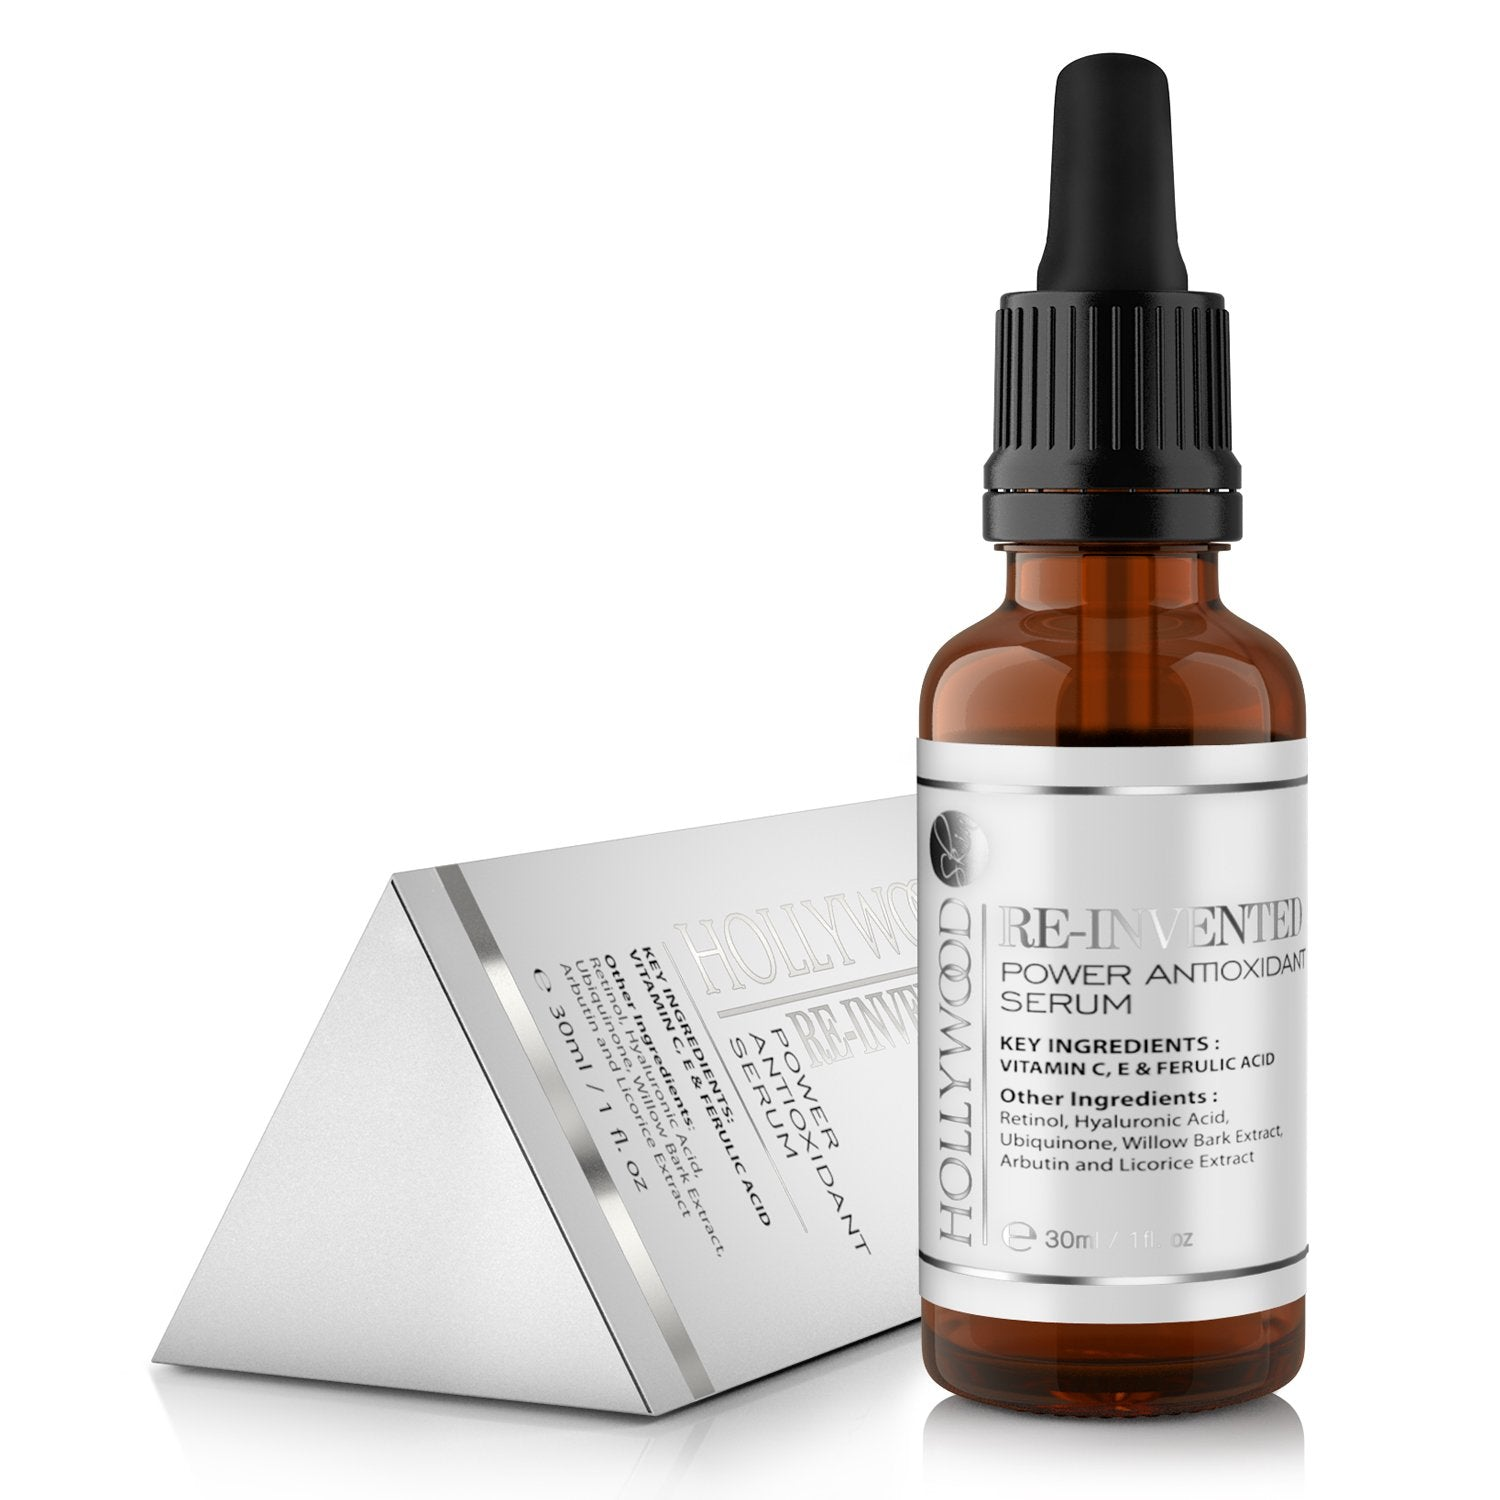 RE-INVENTED Power Antioxidant Serum